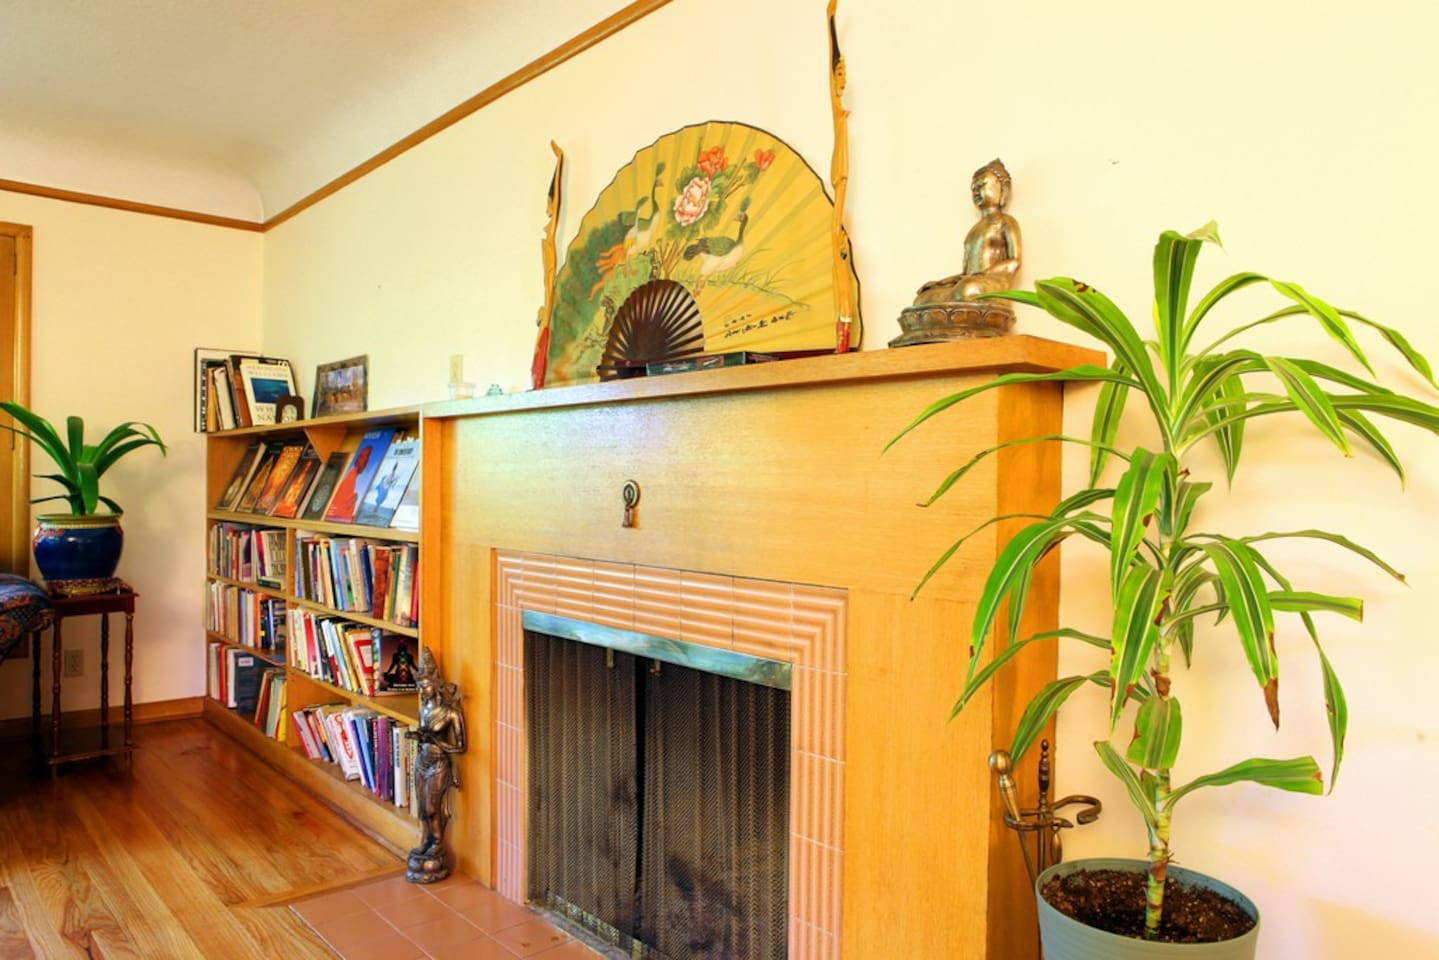 Working fireplace and great library of self help, health and fitness, psychology, and travel books.